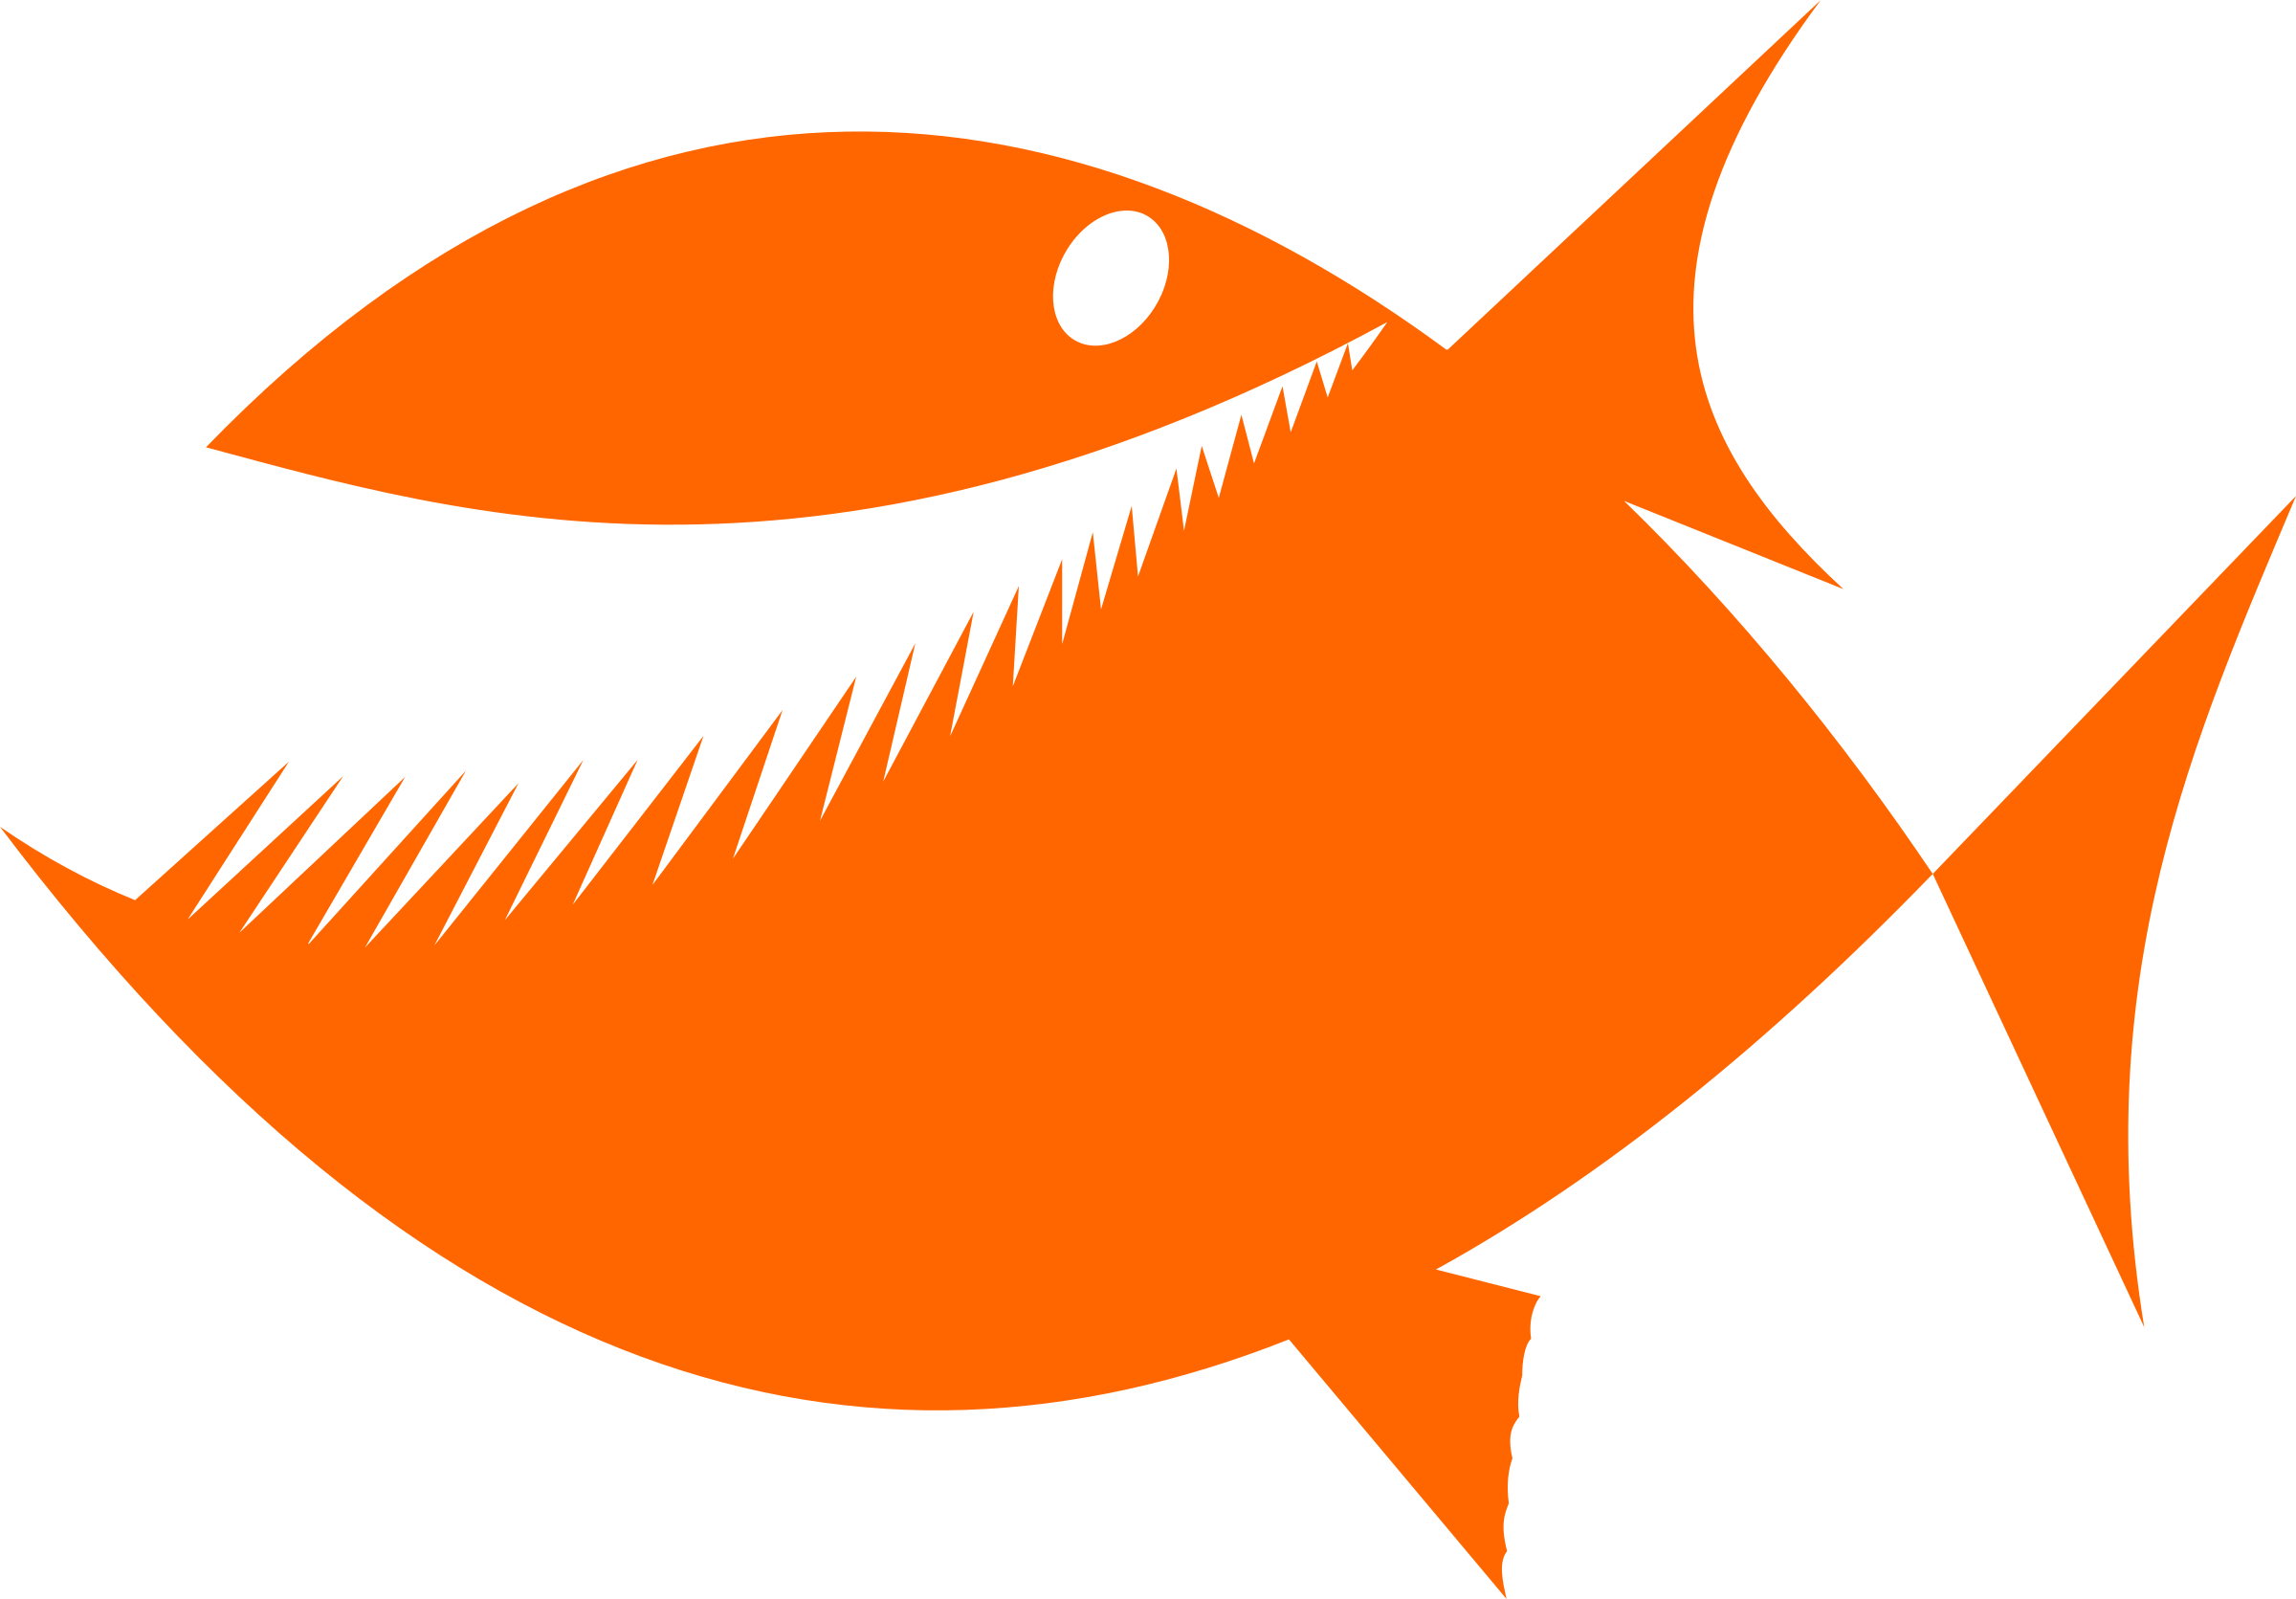 Fish with hook in mouth clipart